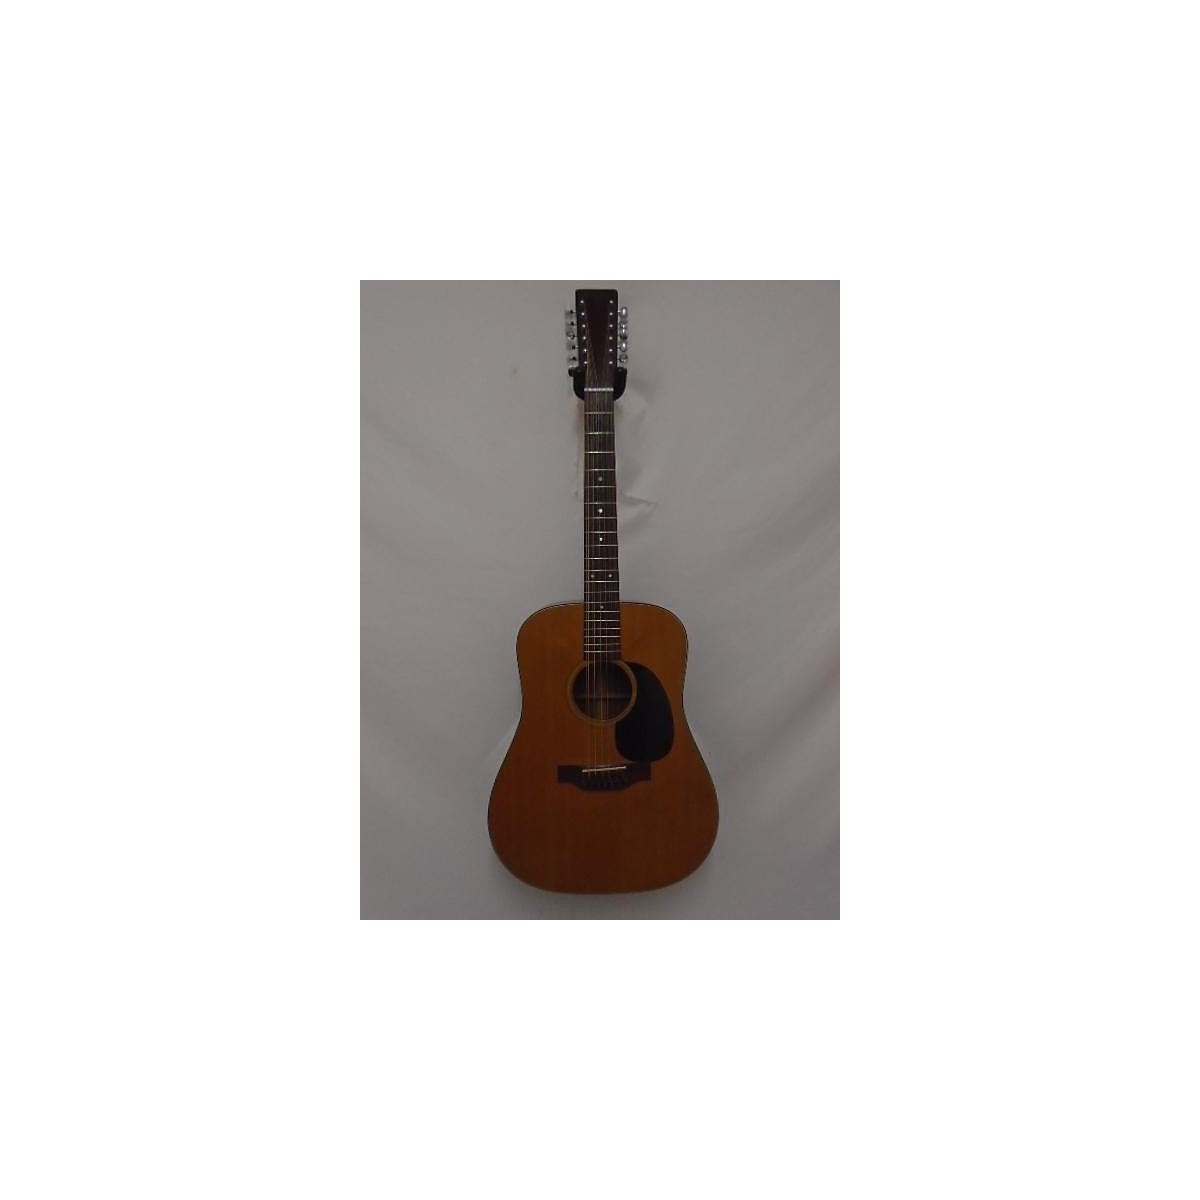 Martin 1974 D12-18 12 String Acoustic Guitar